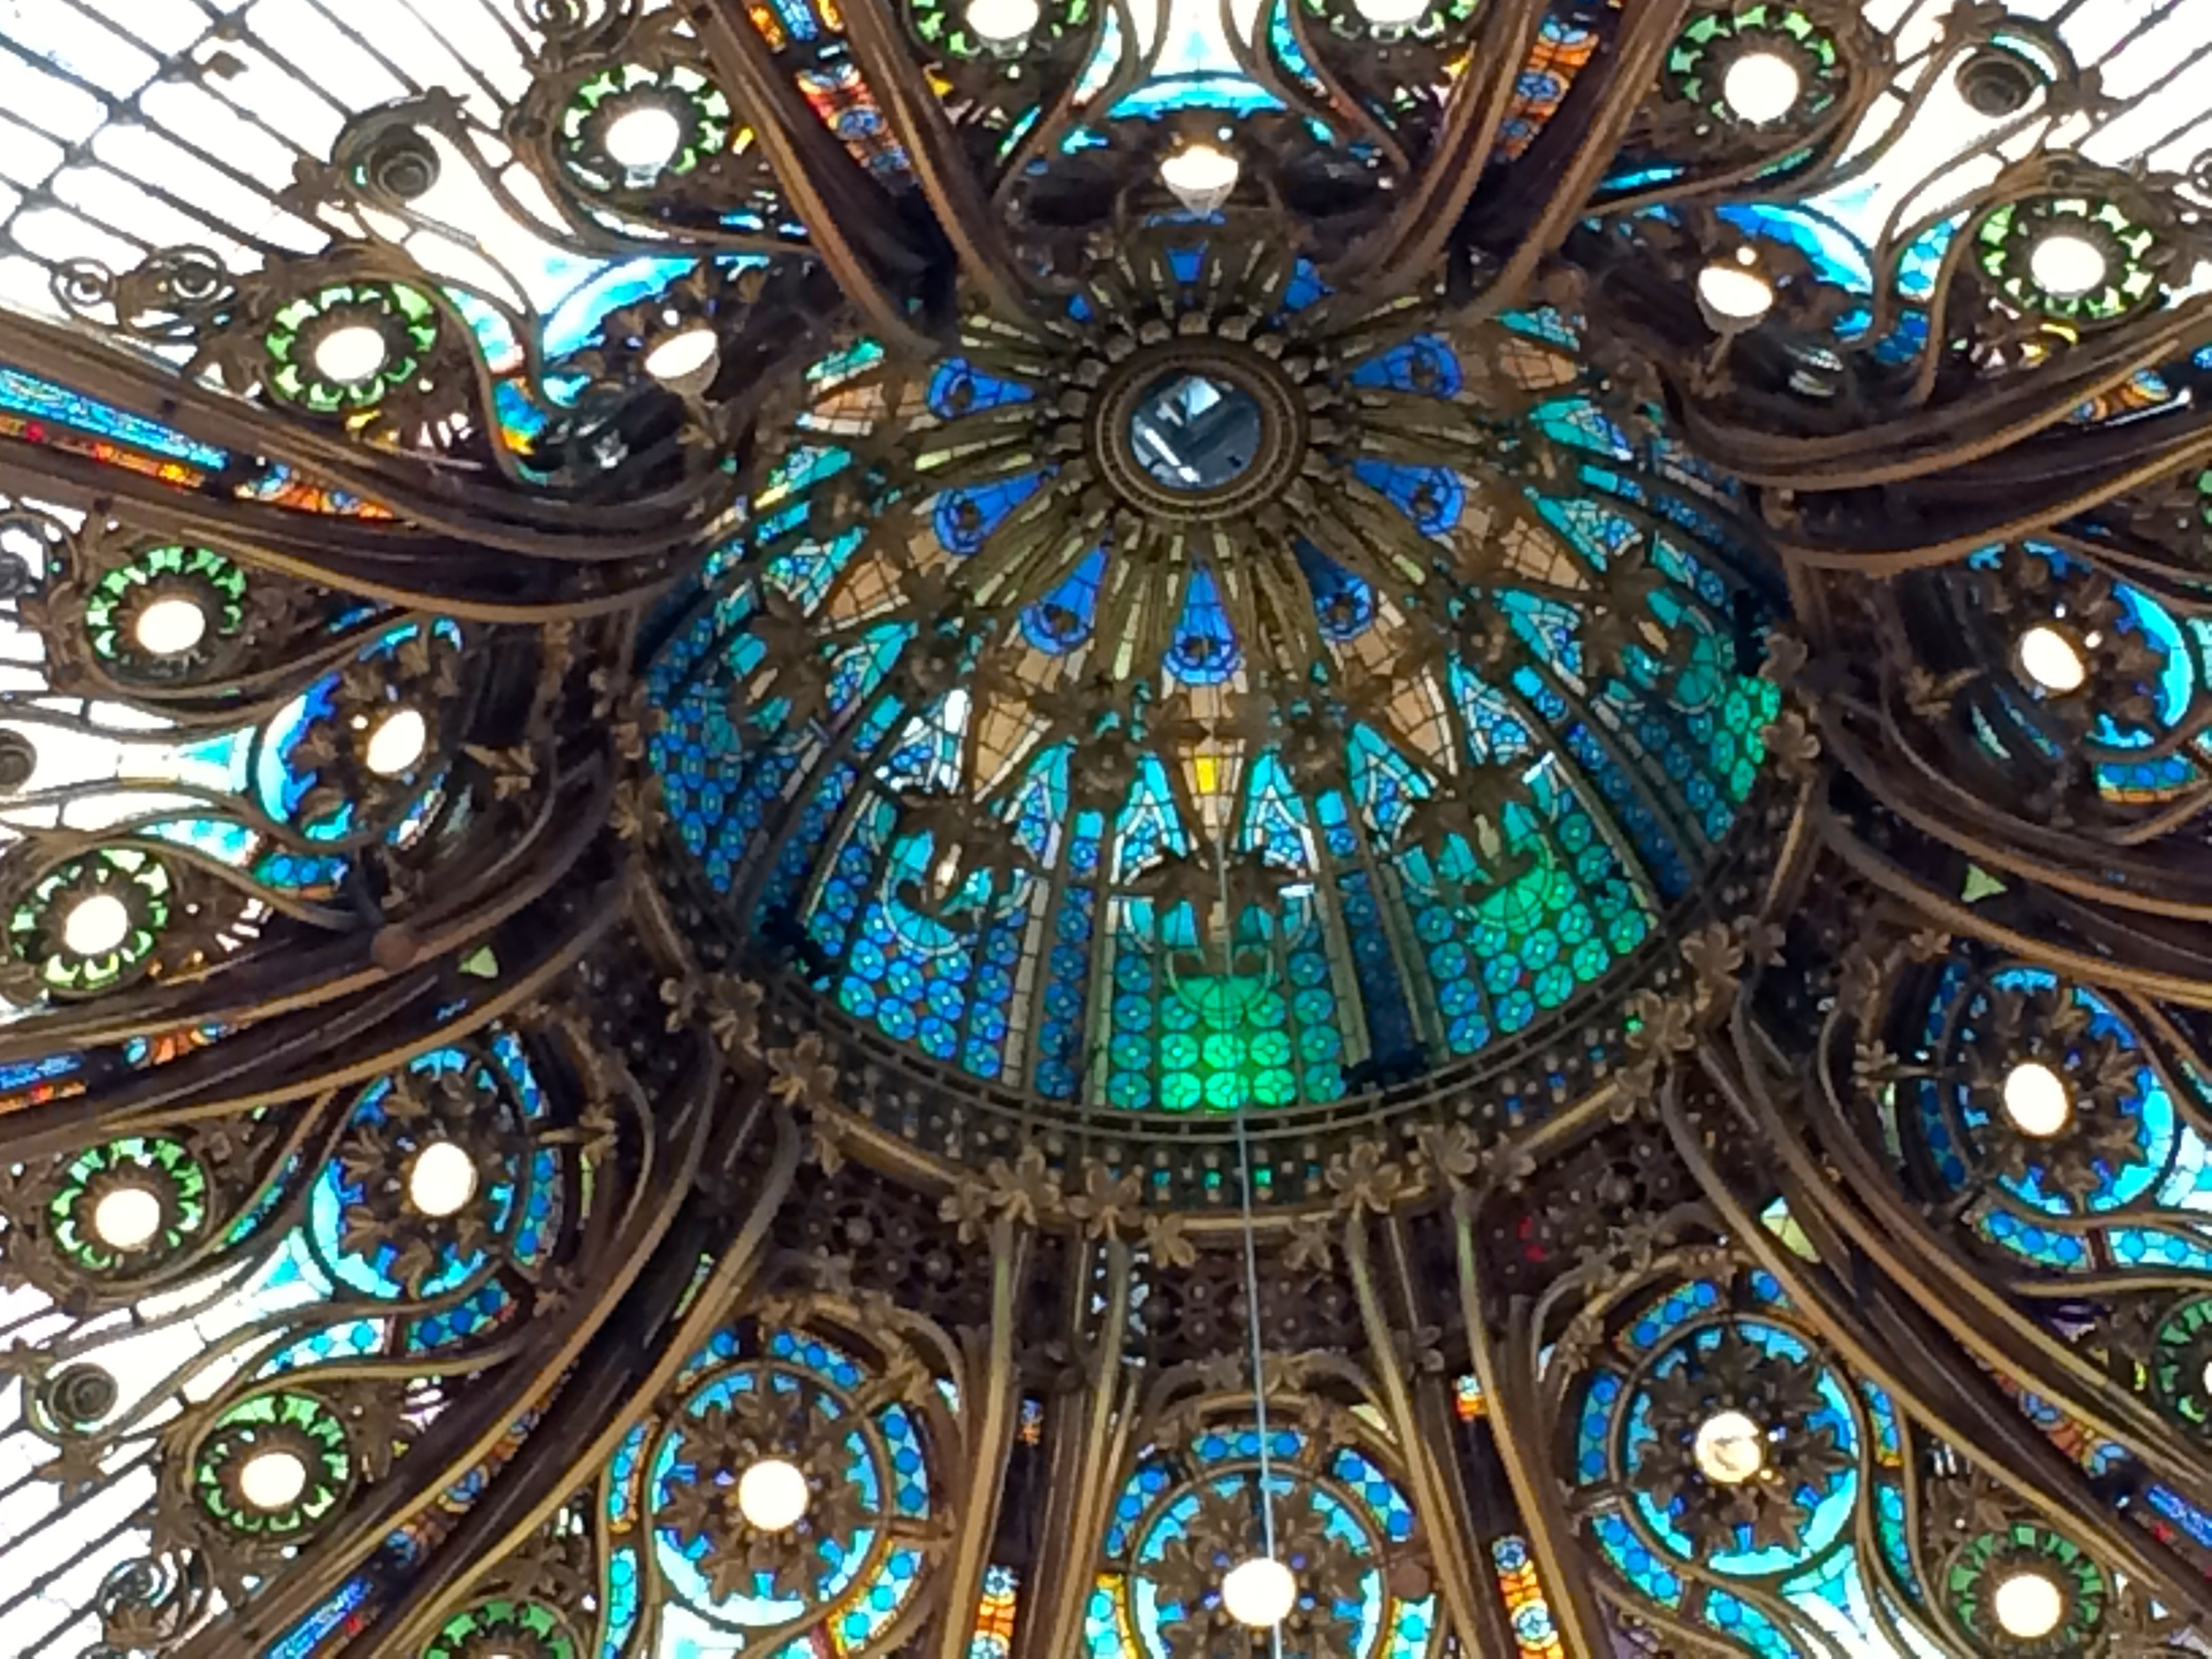 And I couldn't resist one more of the center of the stained glass dome, Galeries Lafayette. What must life have been life have been like when shopping here was the norm...